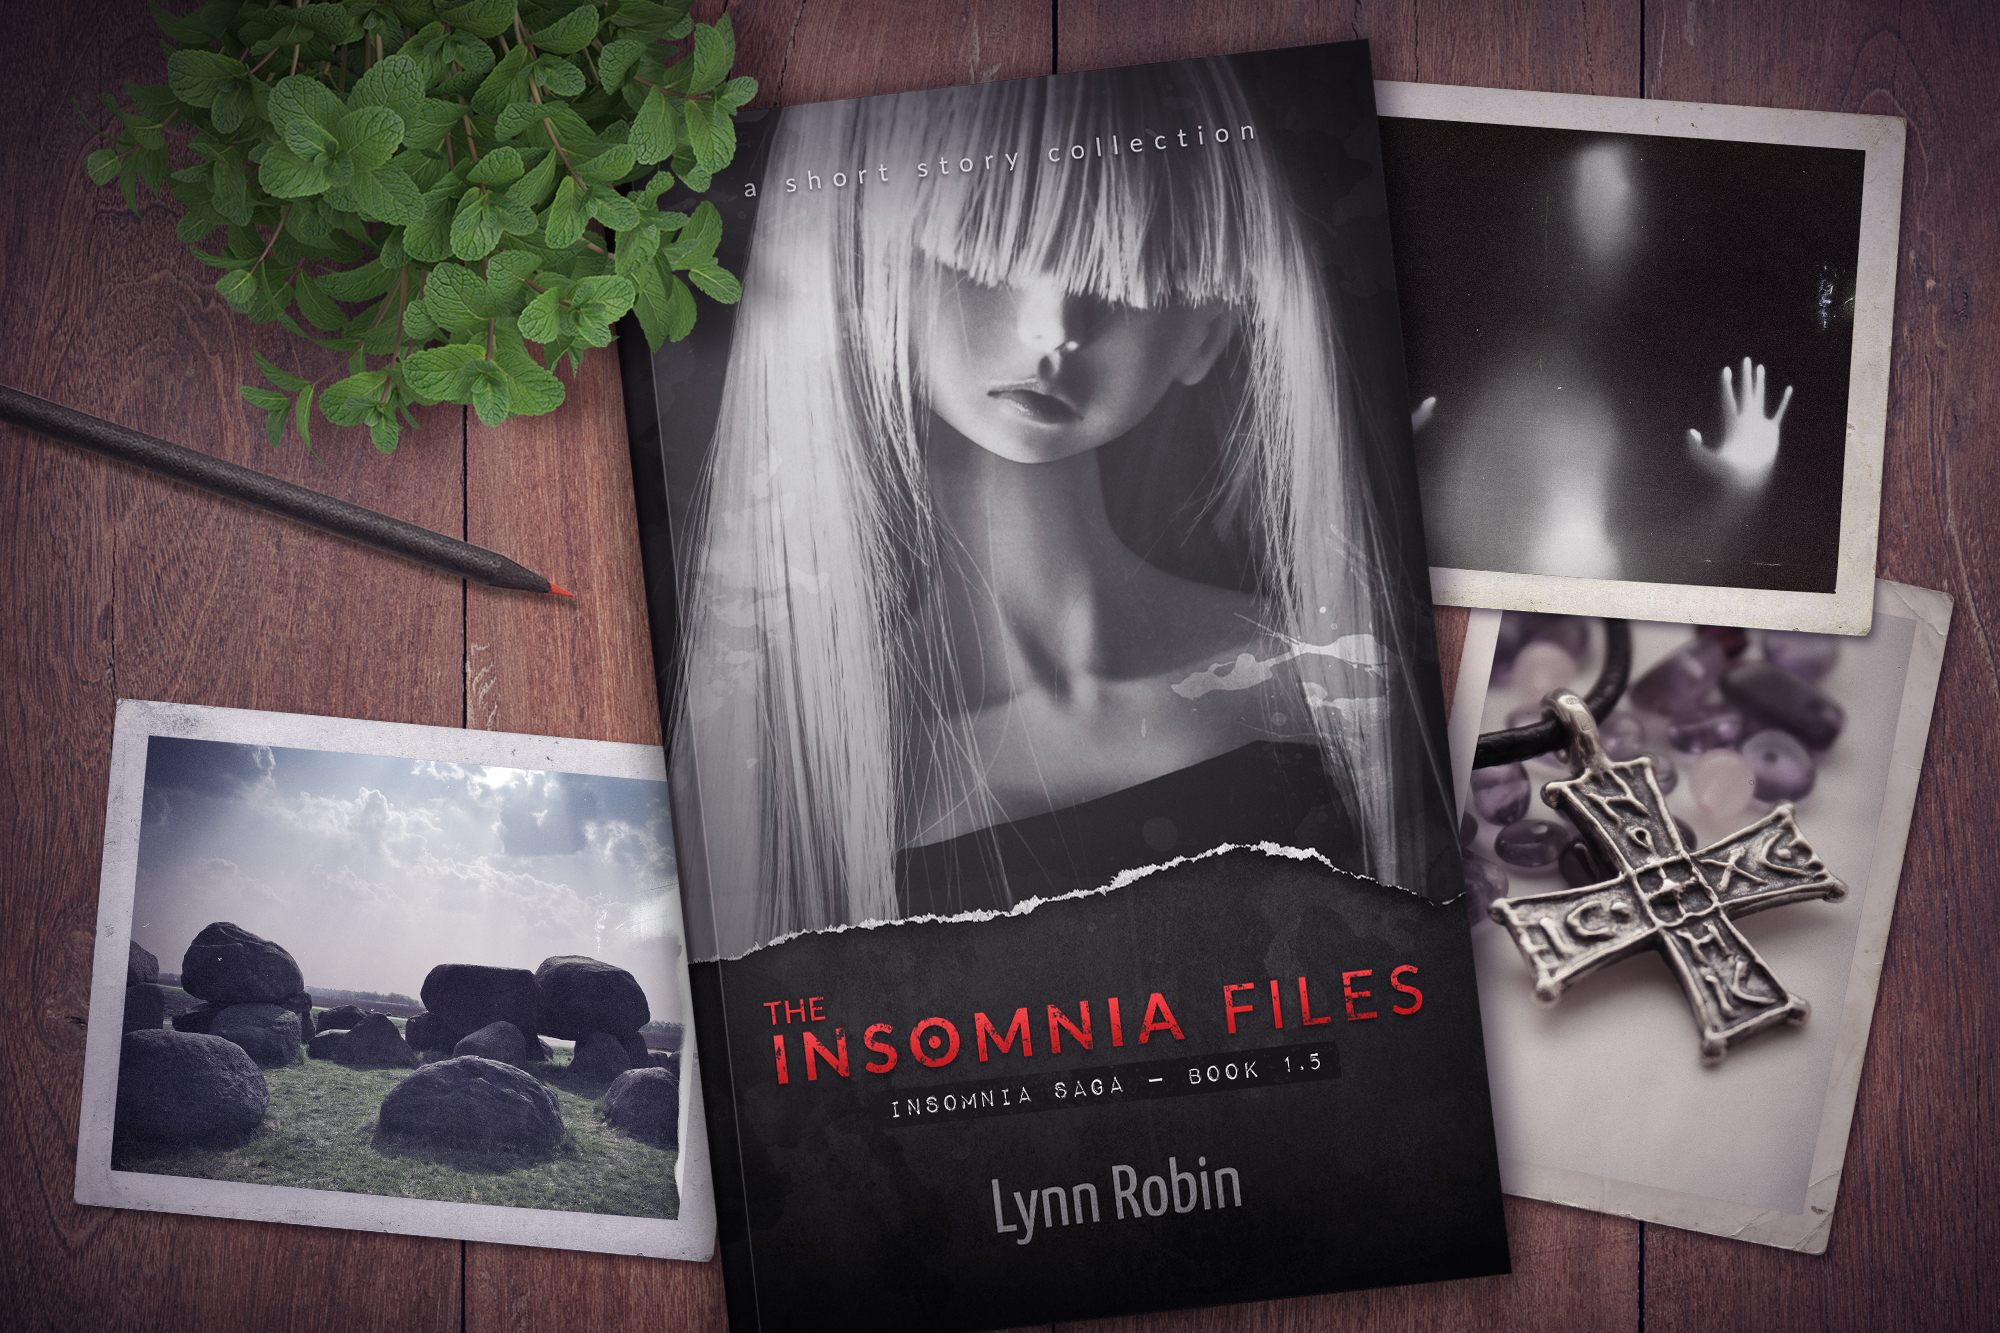 The Insomnia Files TEASER | File #2: KAY SOMNUS (Chapter 1)